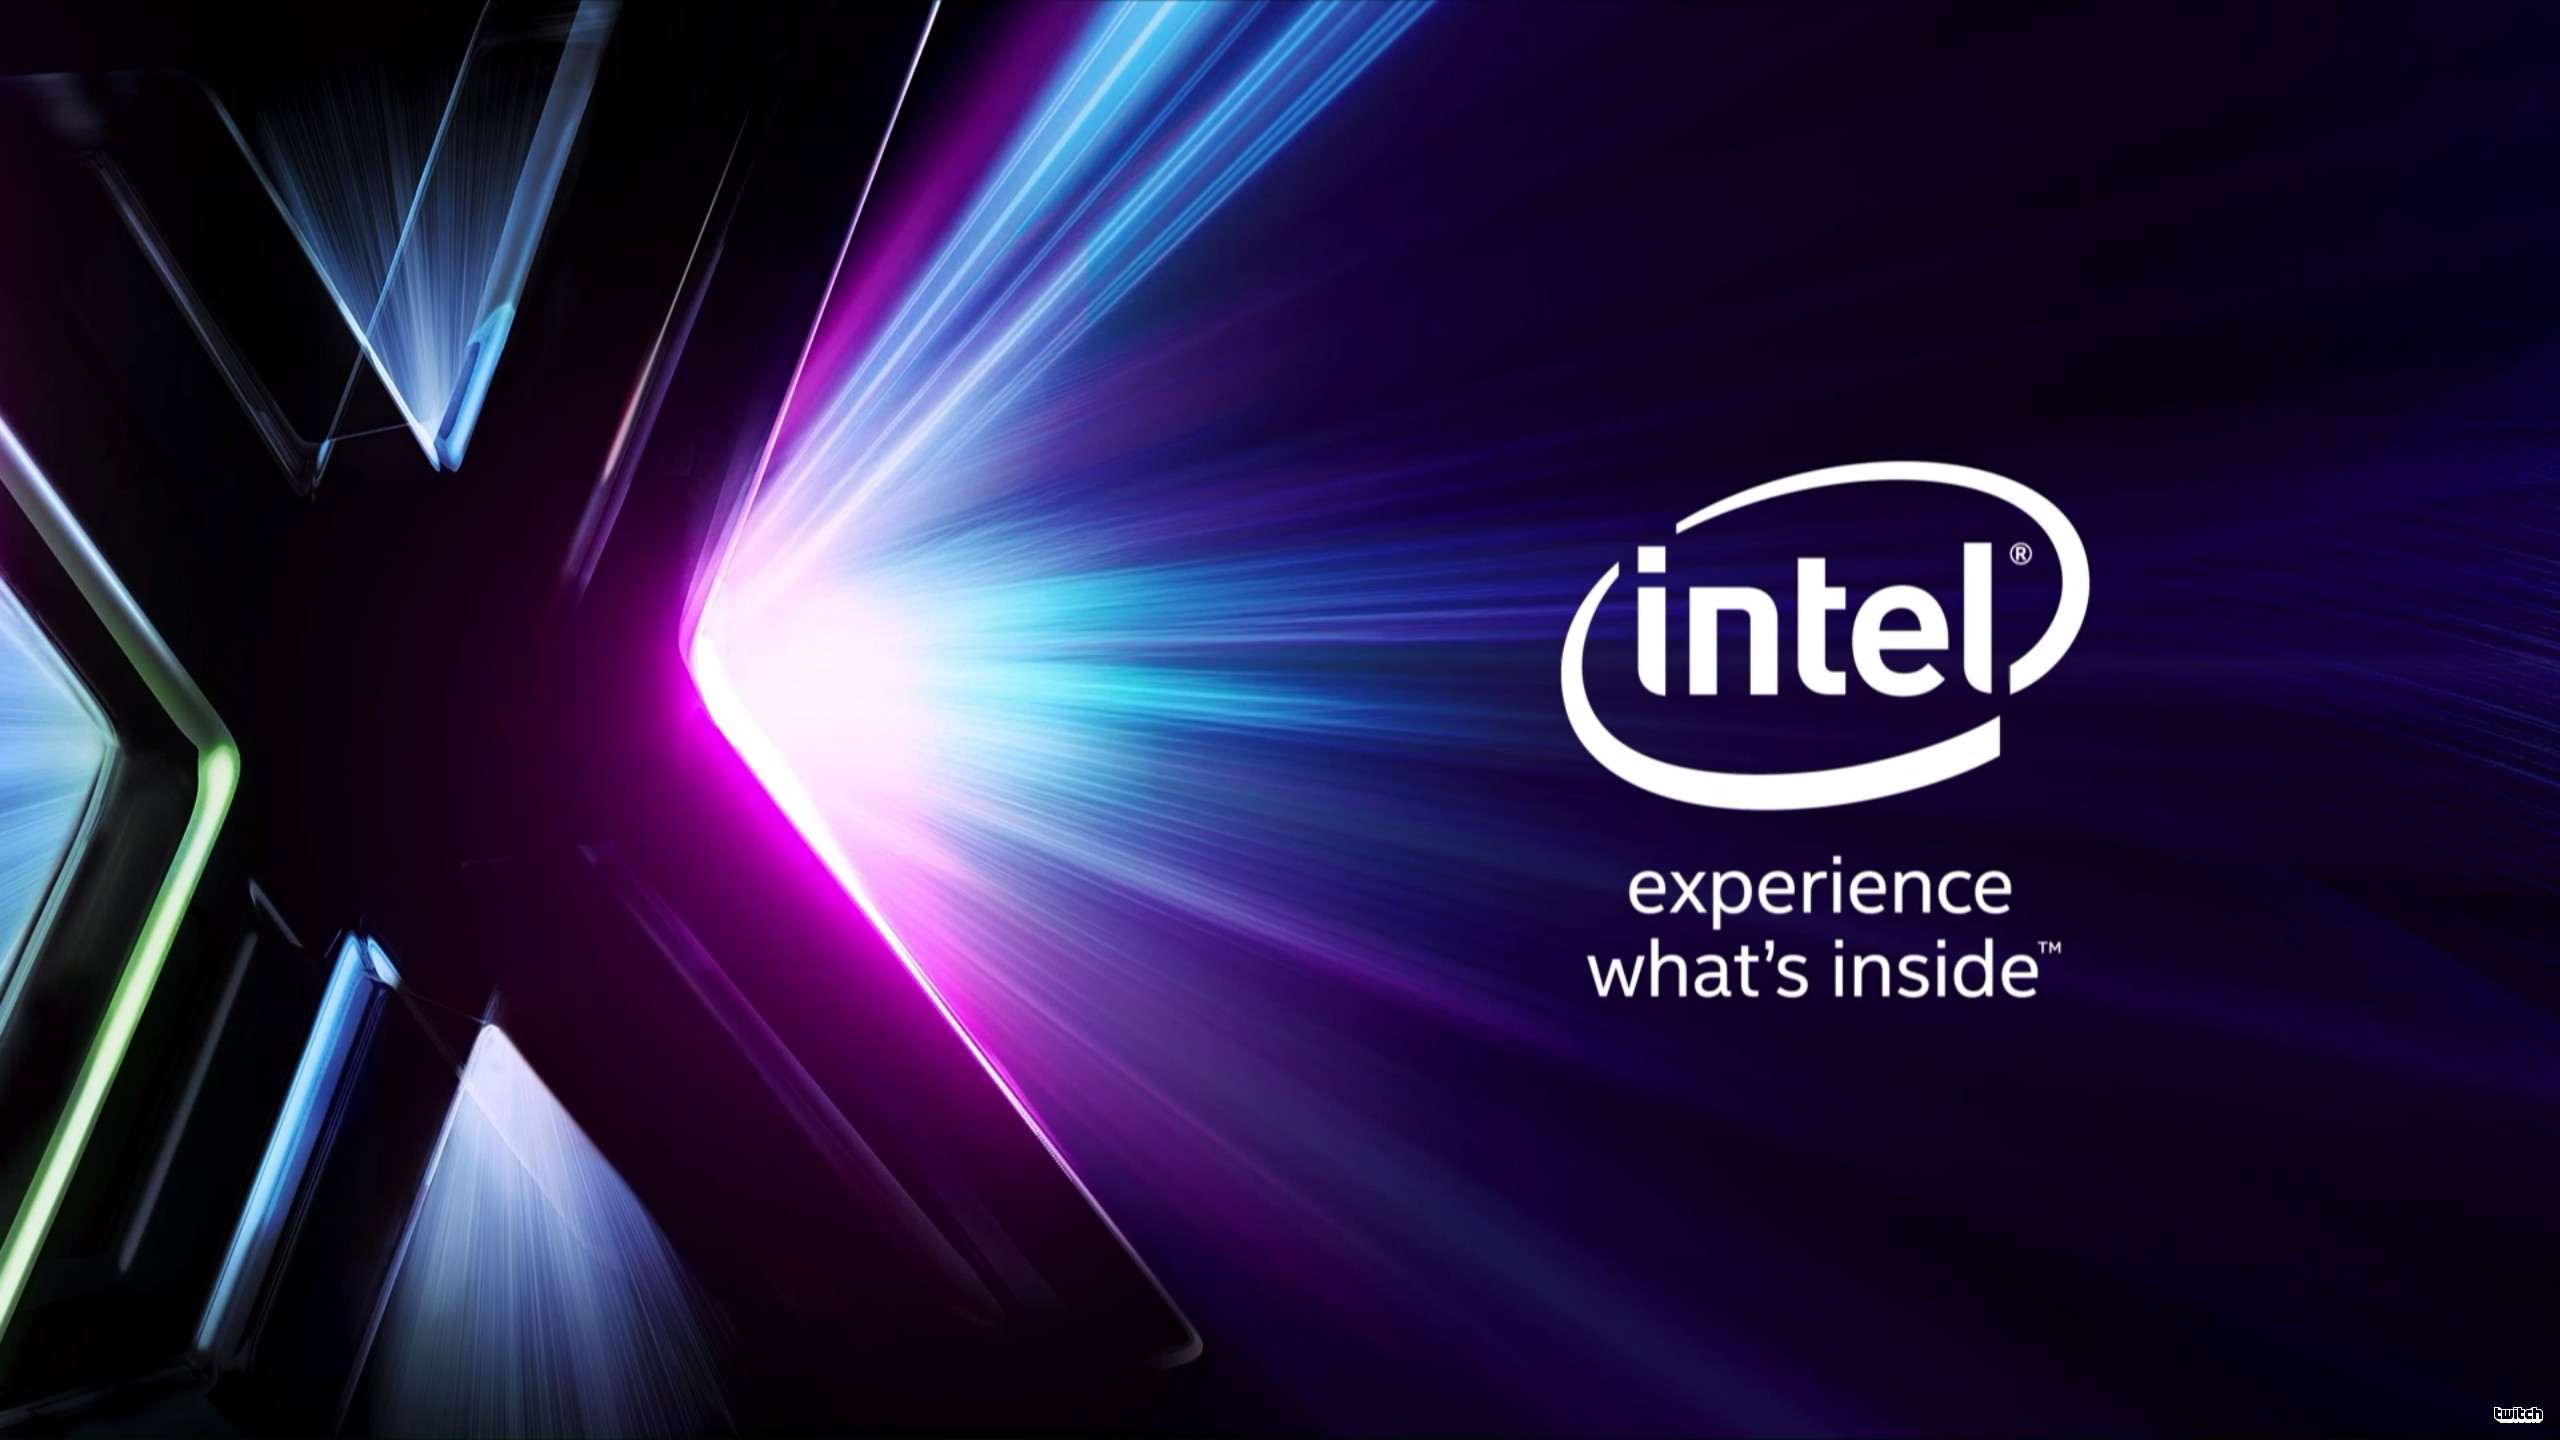 2560x1440 Intel is all set to launch the new Core i7-8700K